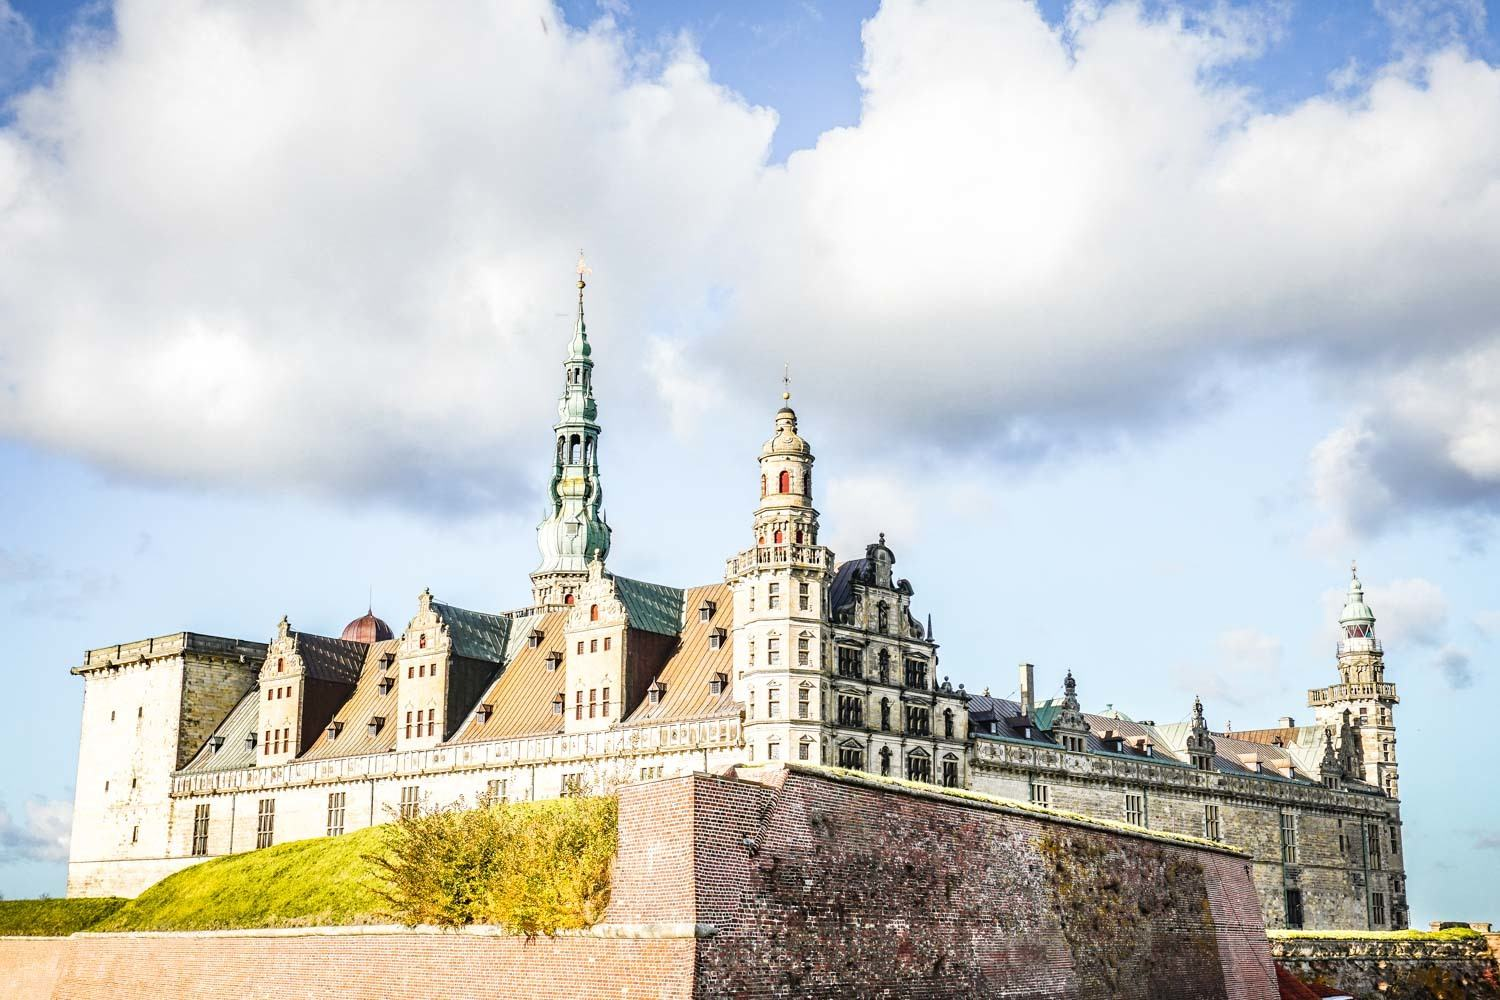 Kronborg Slot is also included in the Copenhagen Card